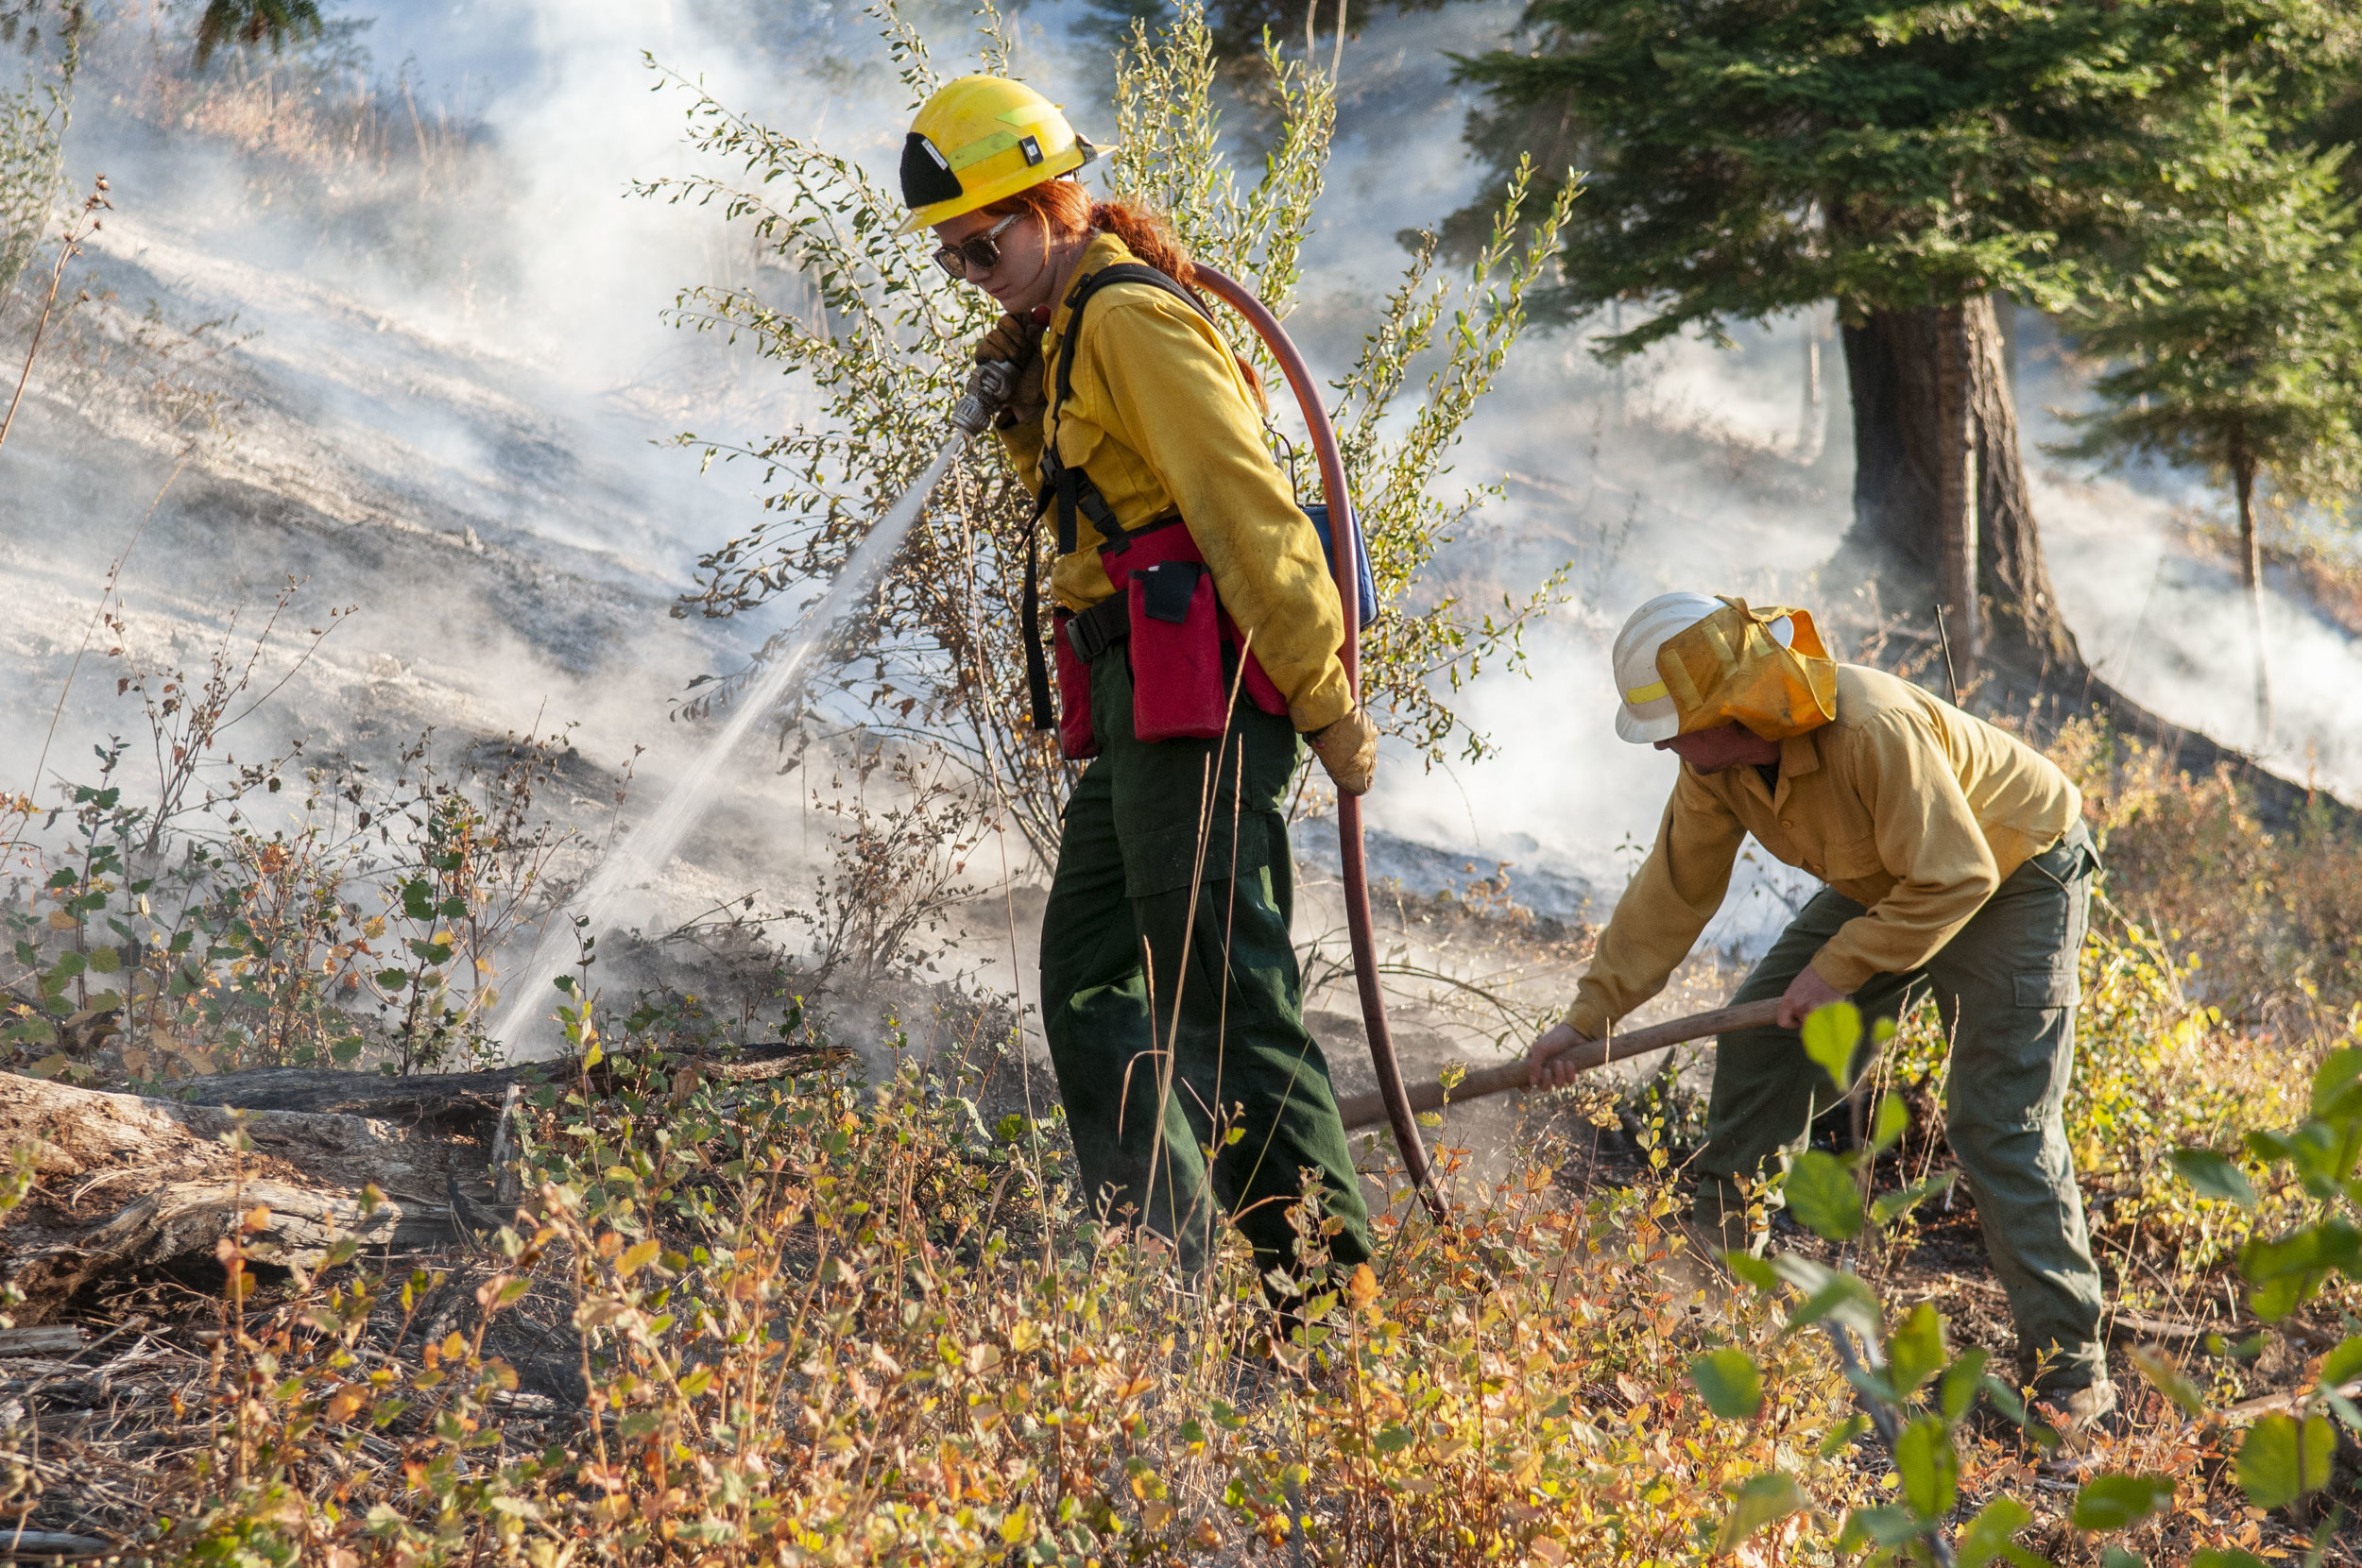 Mopup on Oct. 4 after the prescribed burn on Roslyn Ridge. © Nikolaj Lasbo / TNC